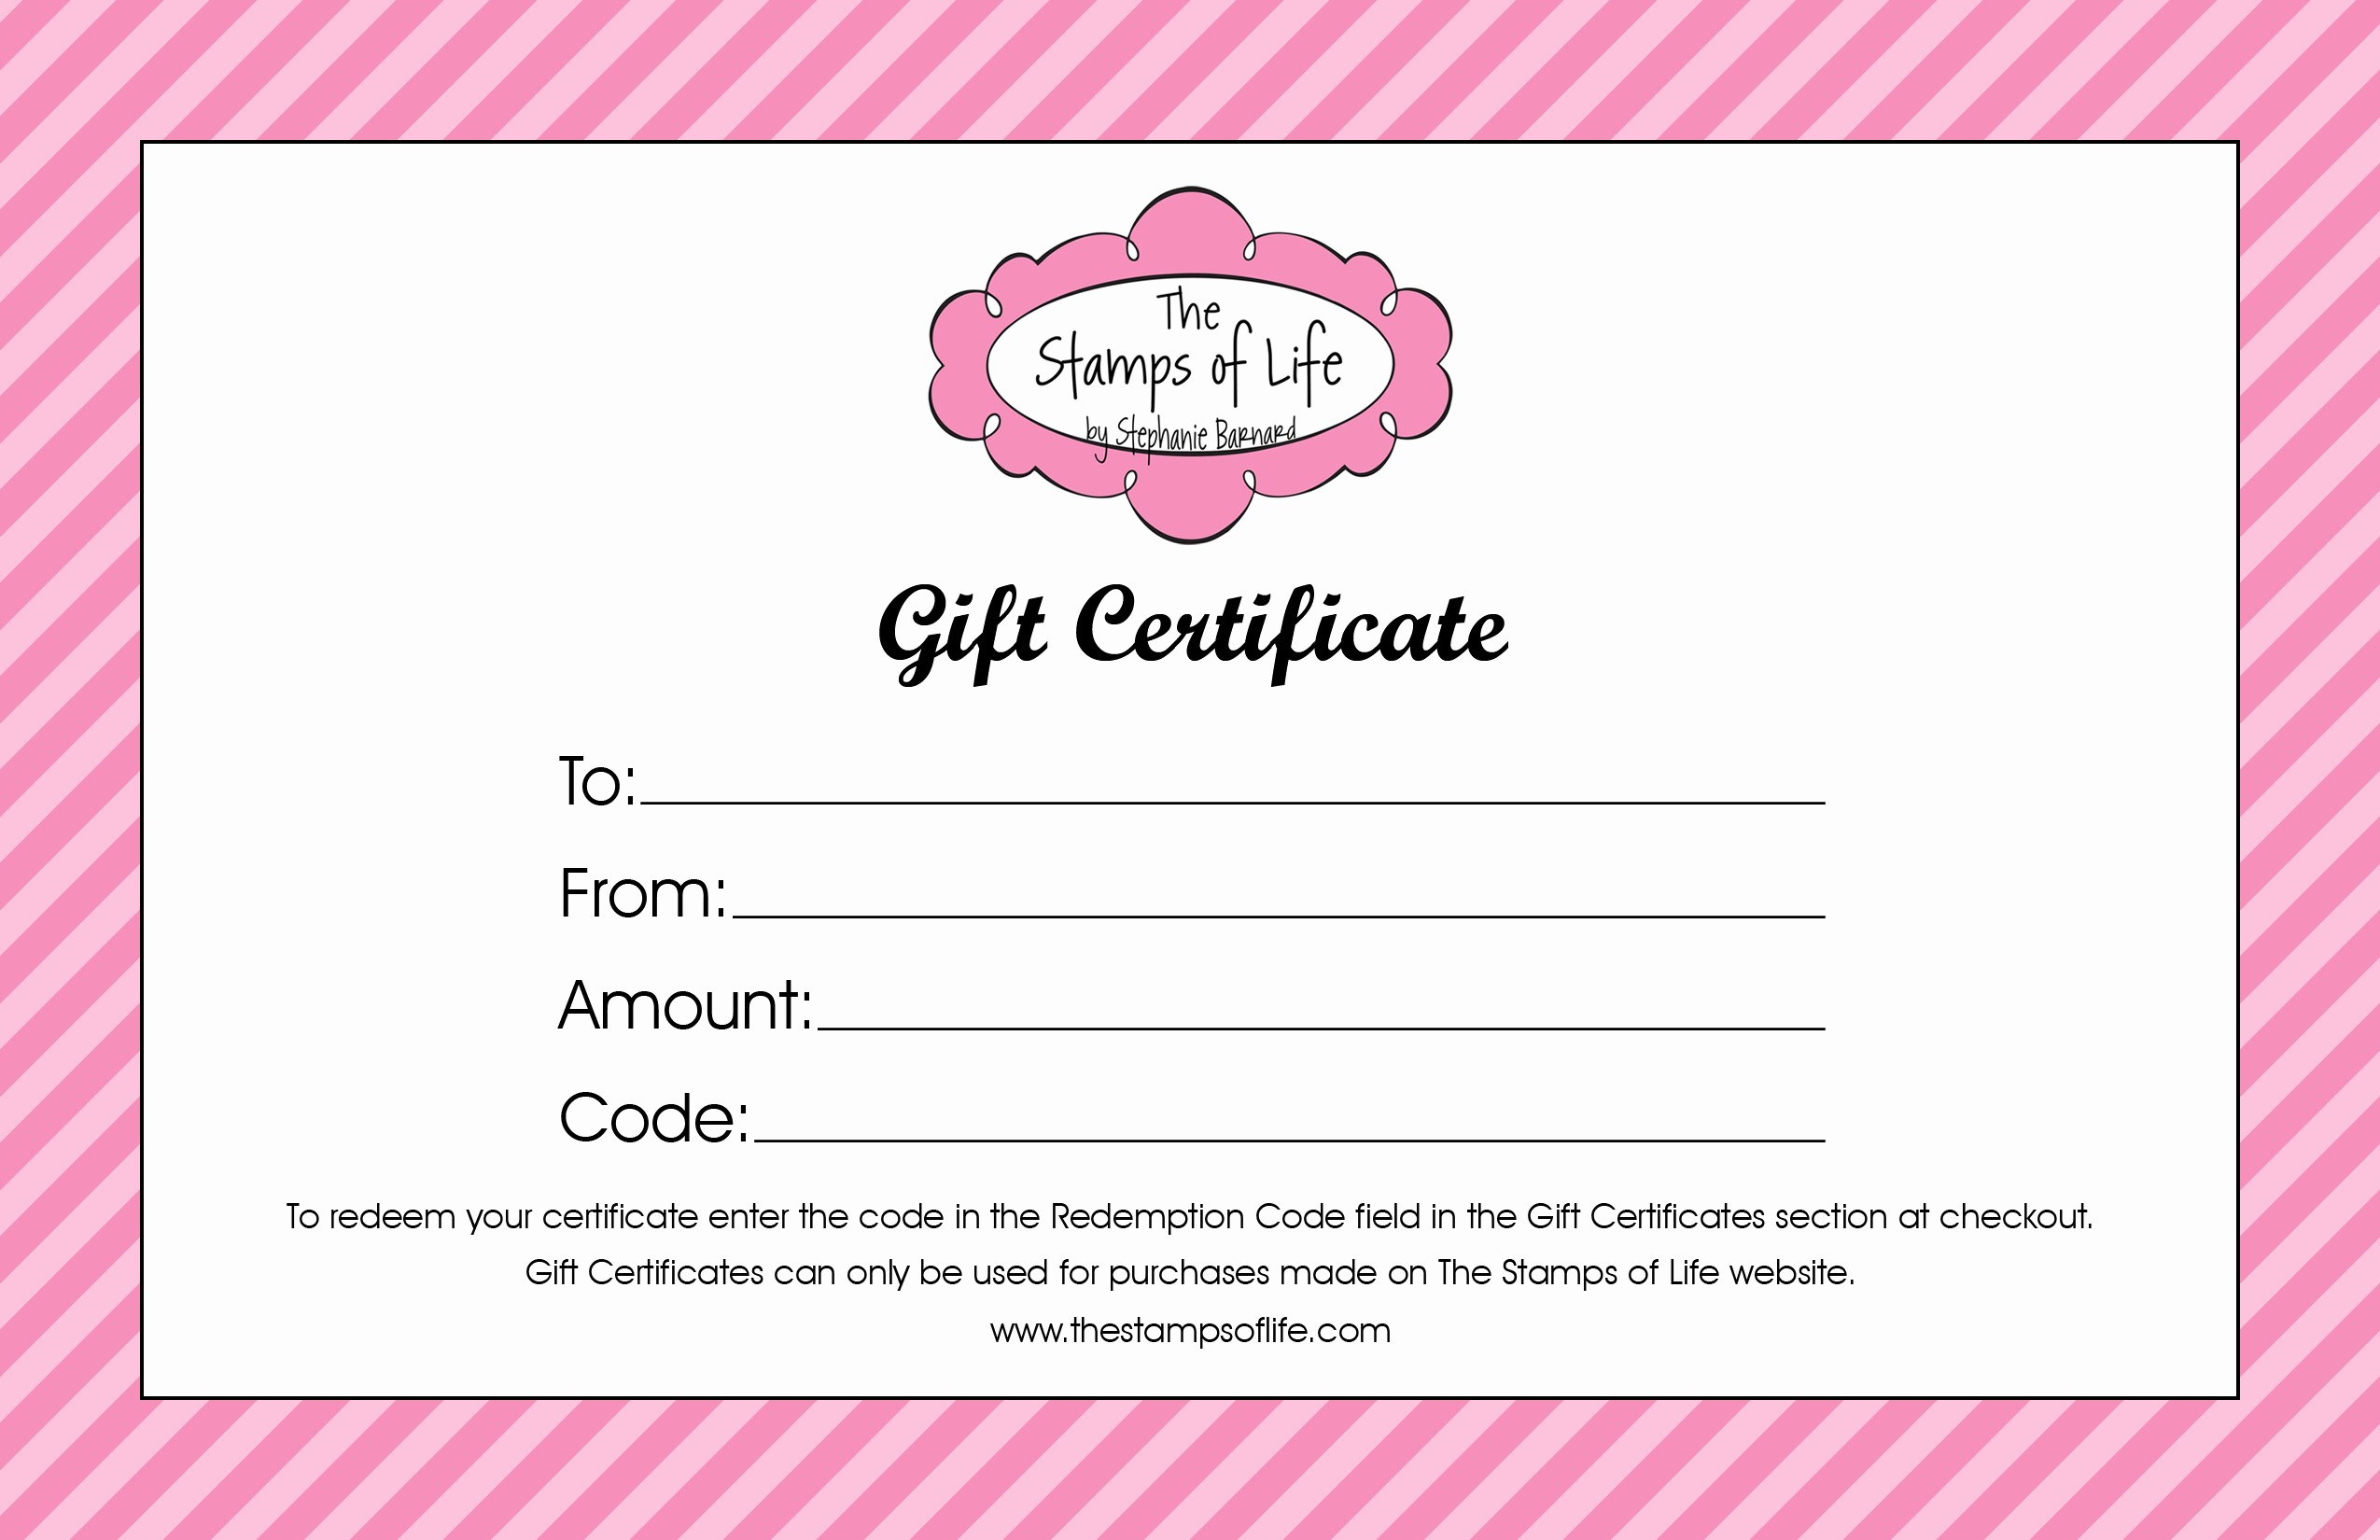 Print Gift Certificates Free Templates Unique 21 Free Free Gift Certificate Templates Word Excel formats